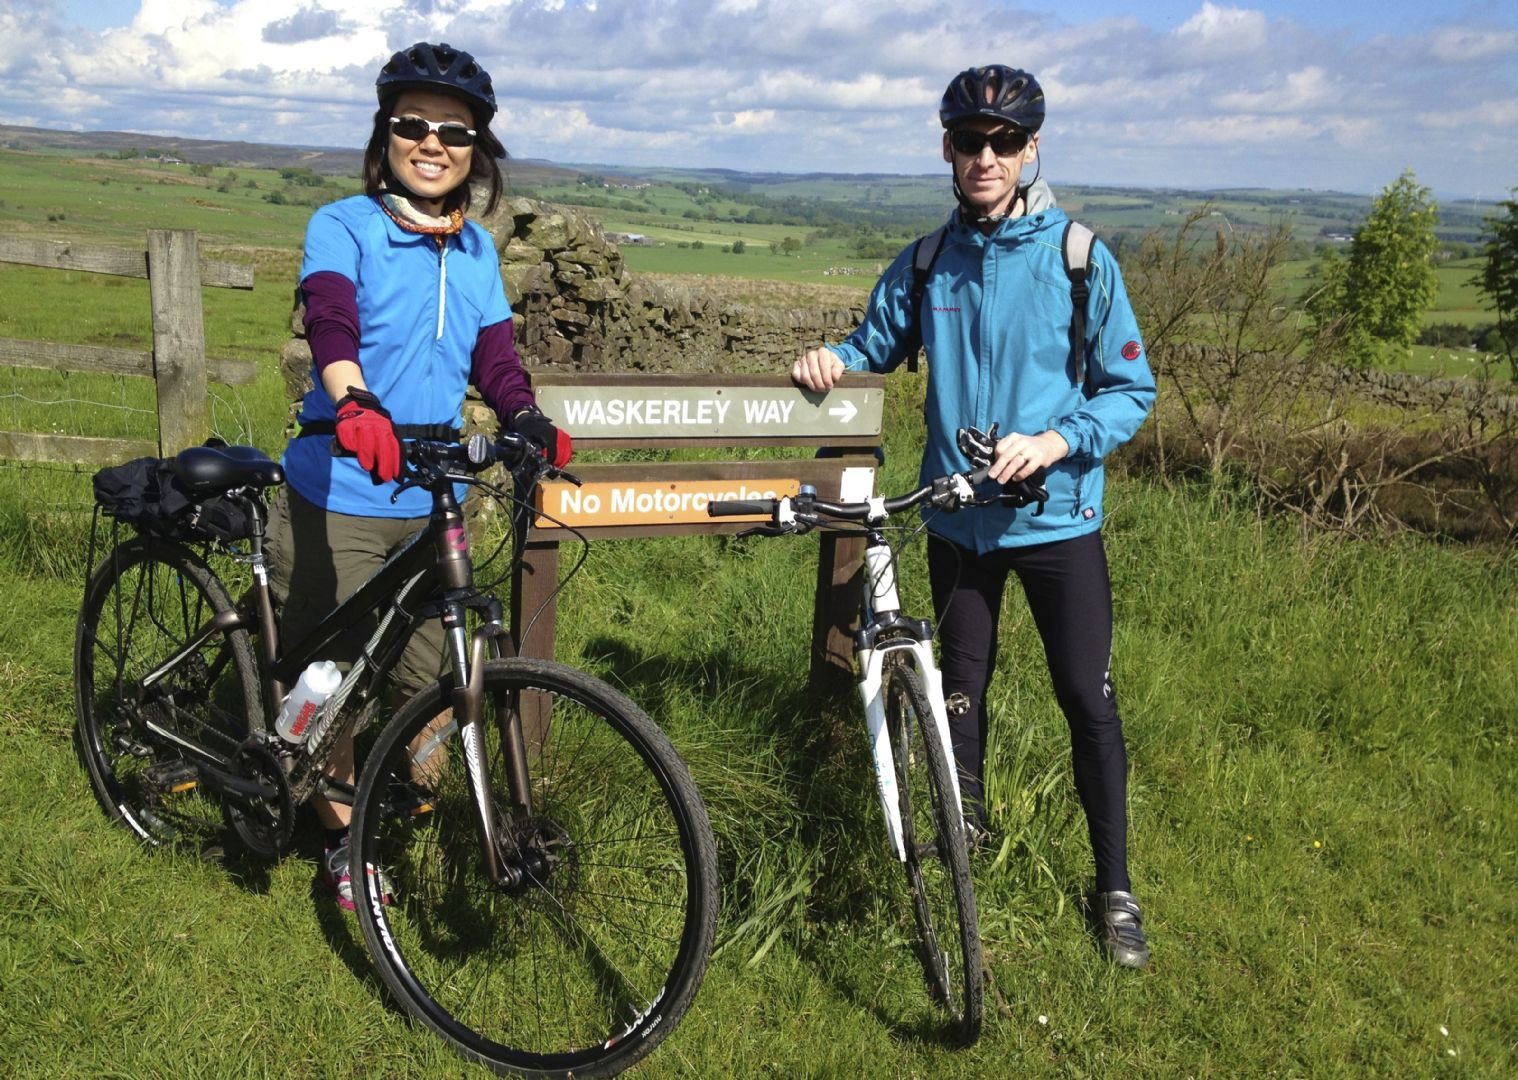 _Customer.103238.16258.jpg - UK - C2C - Coast to Coast - Supported Leisure Cycling Holiday - Leisure Cycling